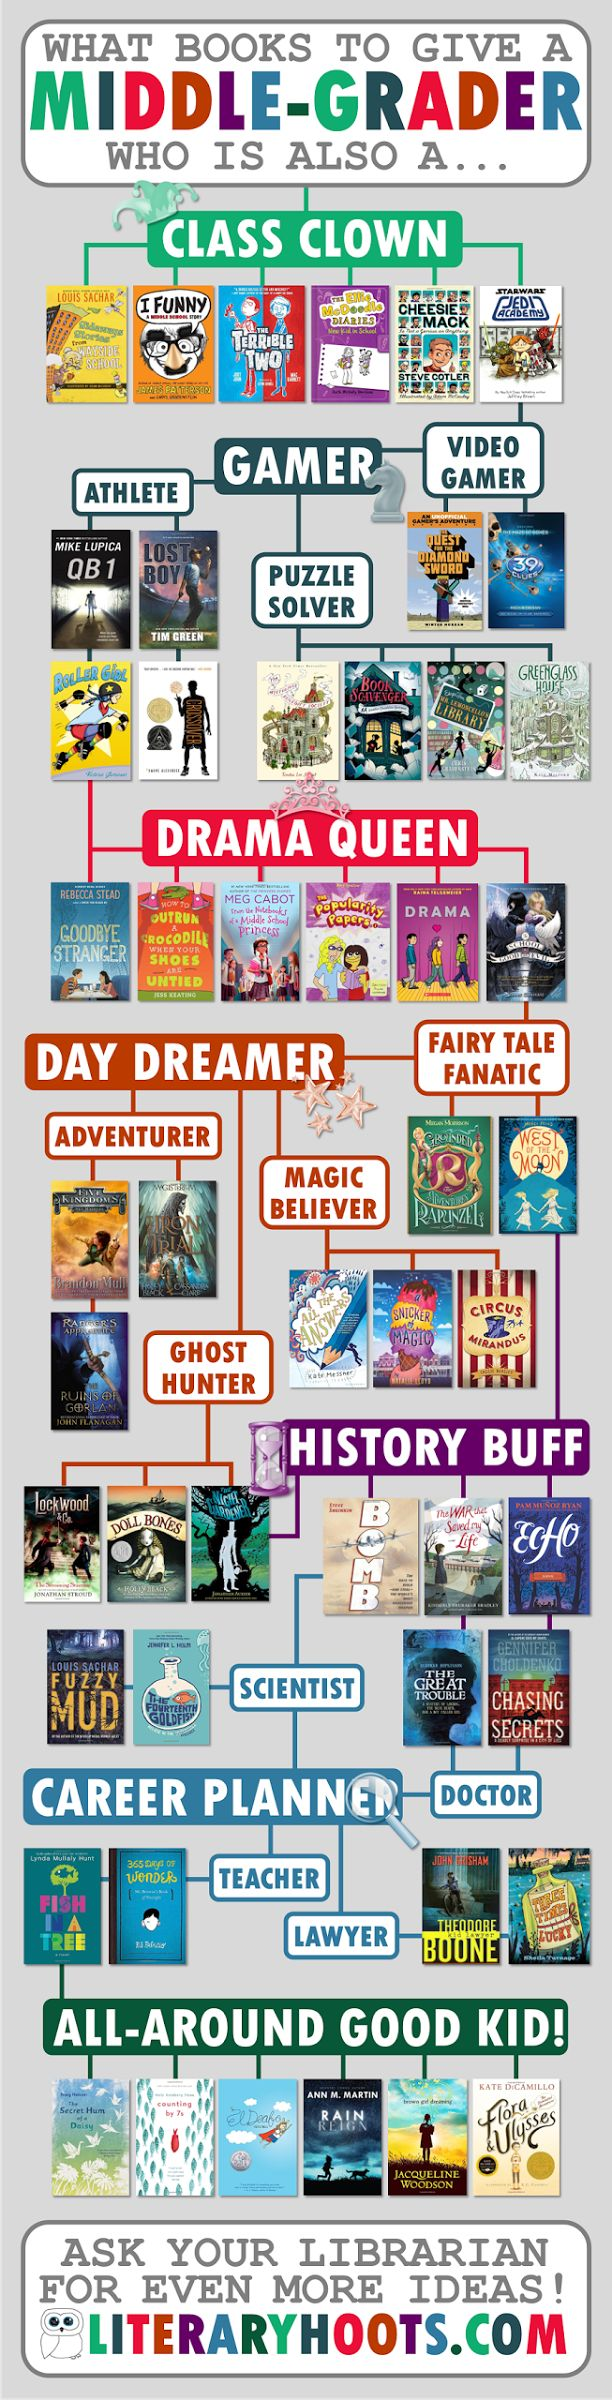 Middle-grade book recommendation flowchart--FREE printable! (from Literaryhoots)